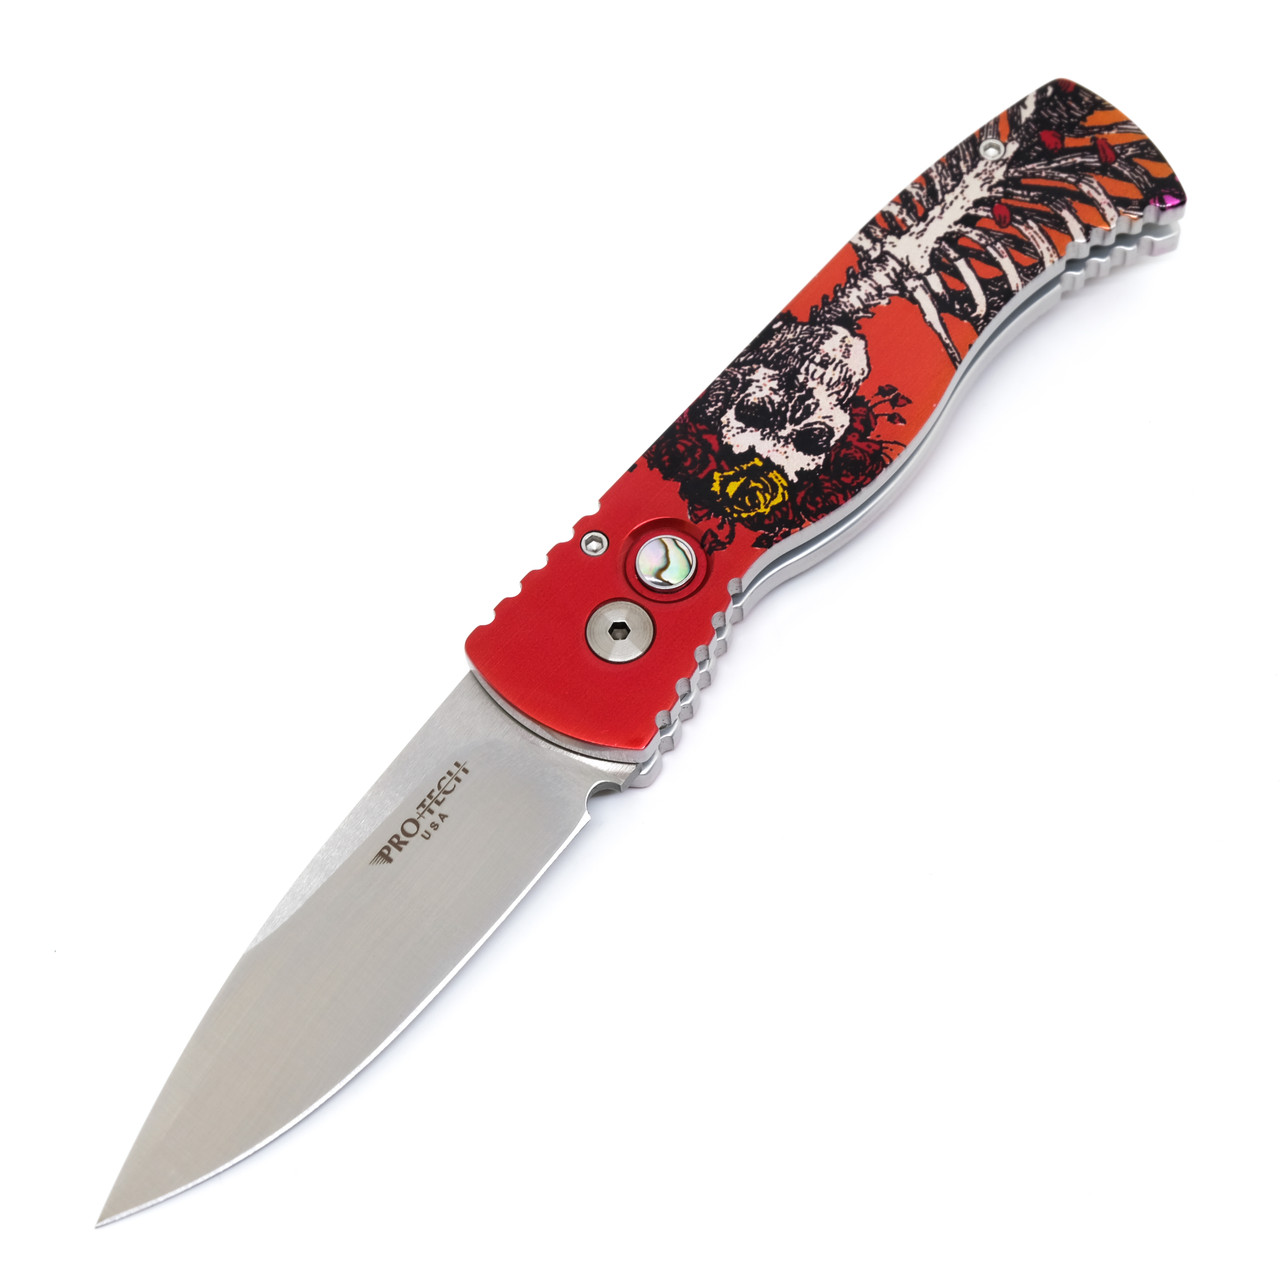 Protech TR-2.41 Skeleton Rose Custom LE PK Mirror Polish Satin Blade